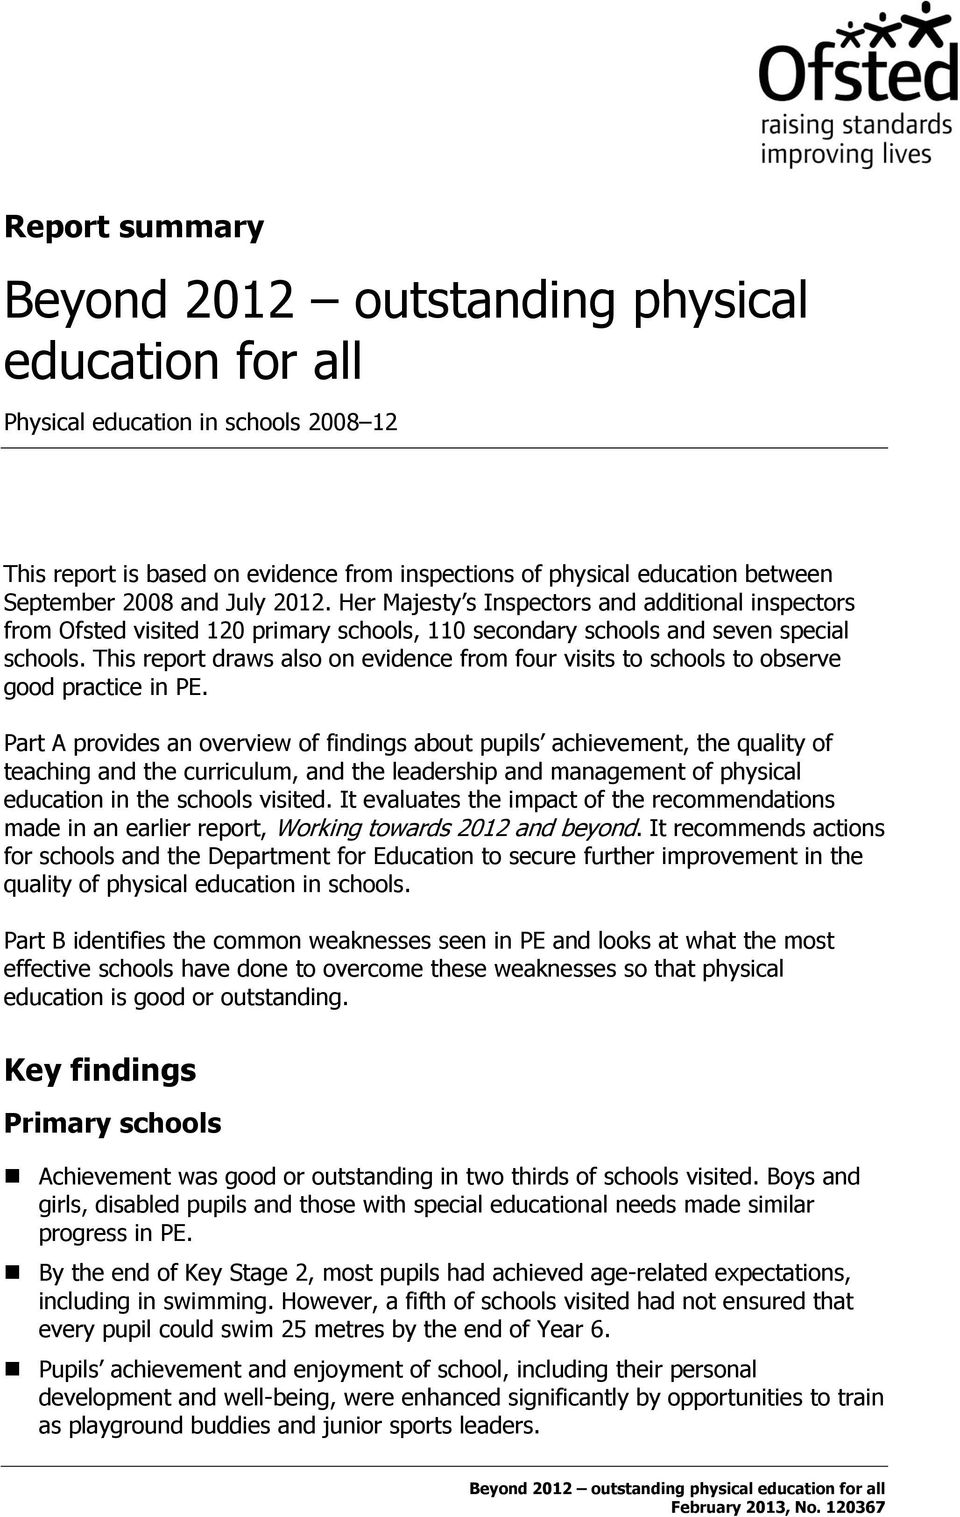 This report draws also on evidence from four visits to schools to observe good practice in PE.